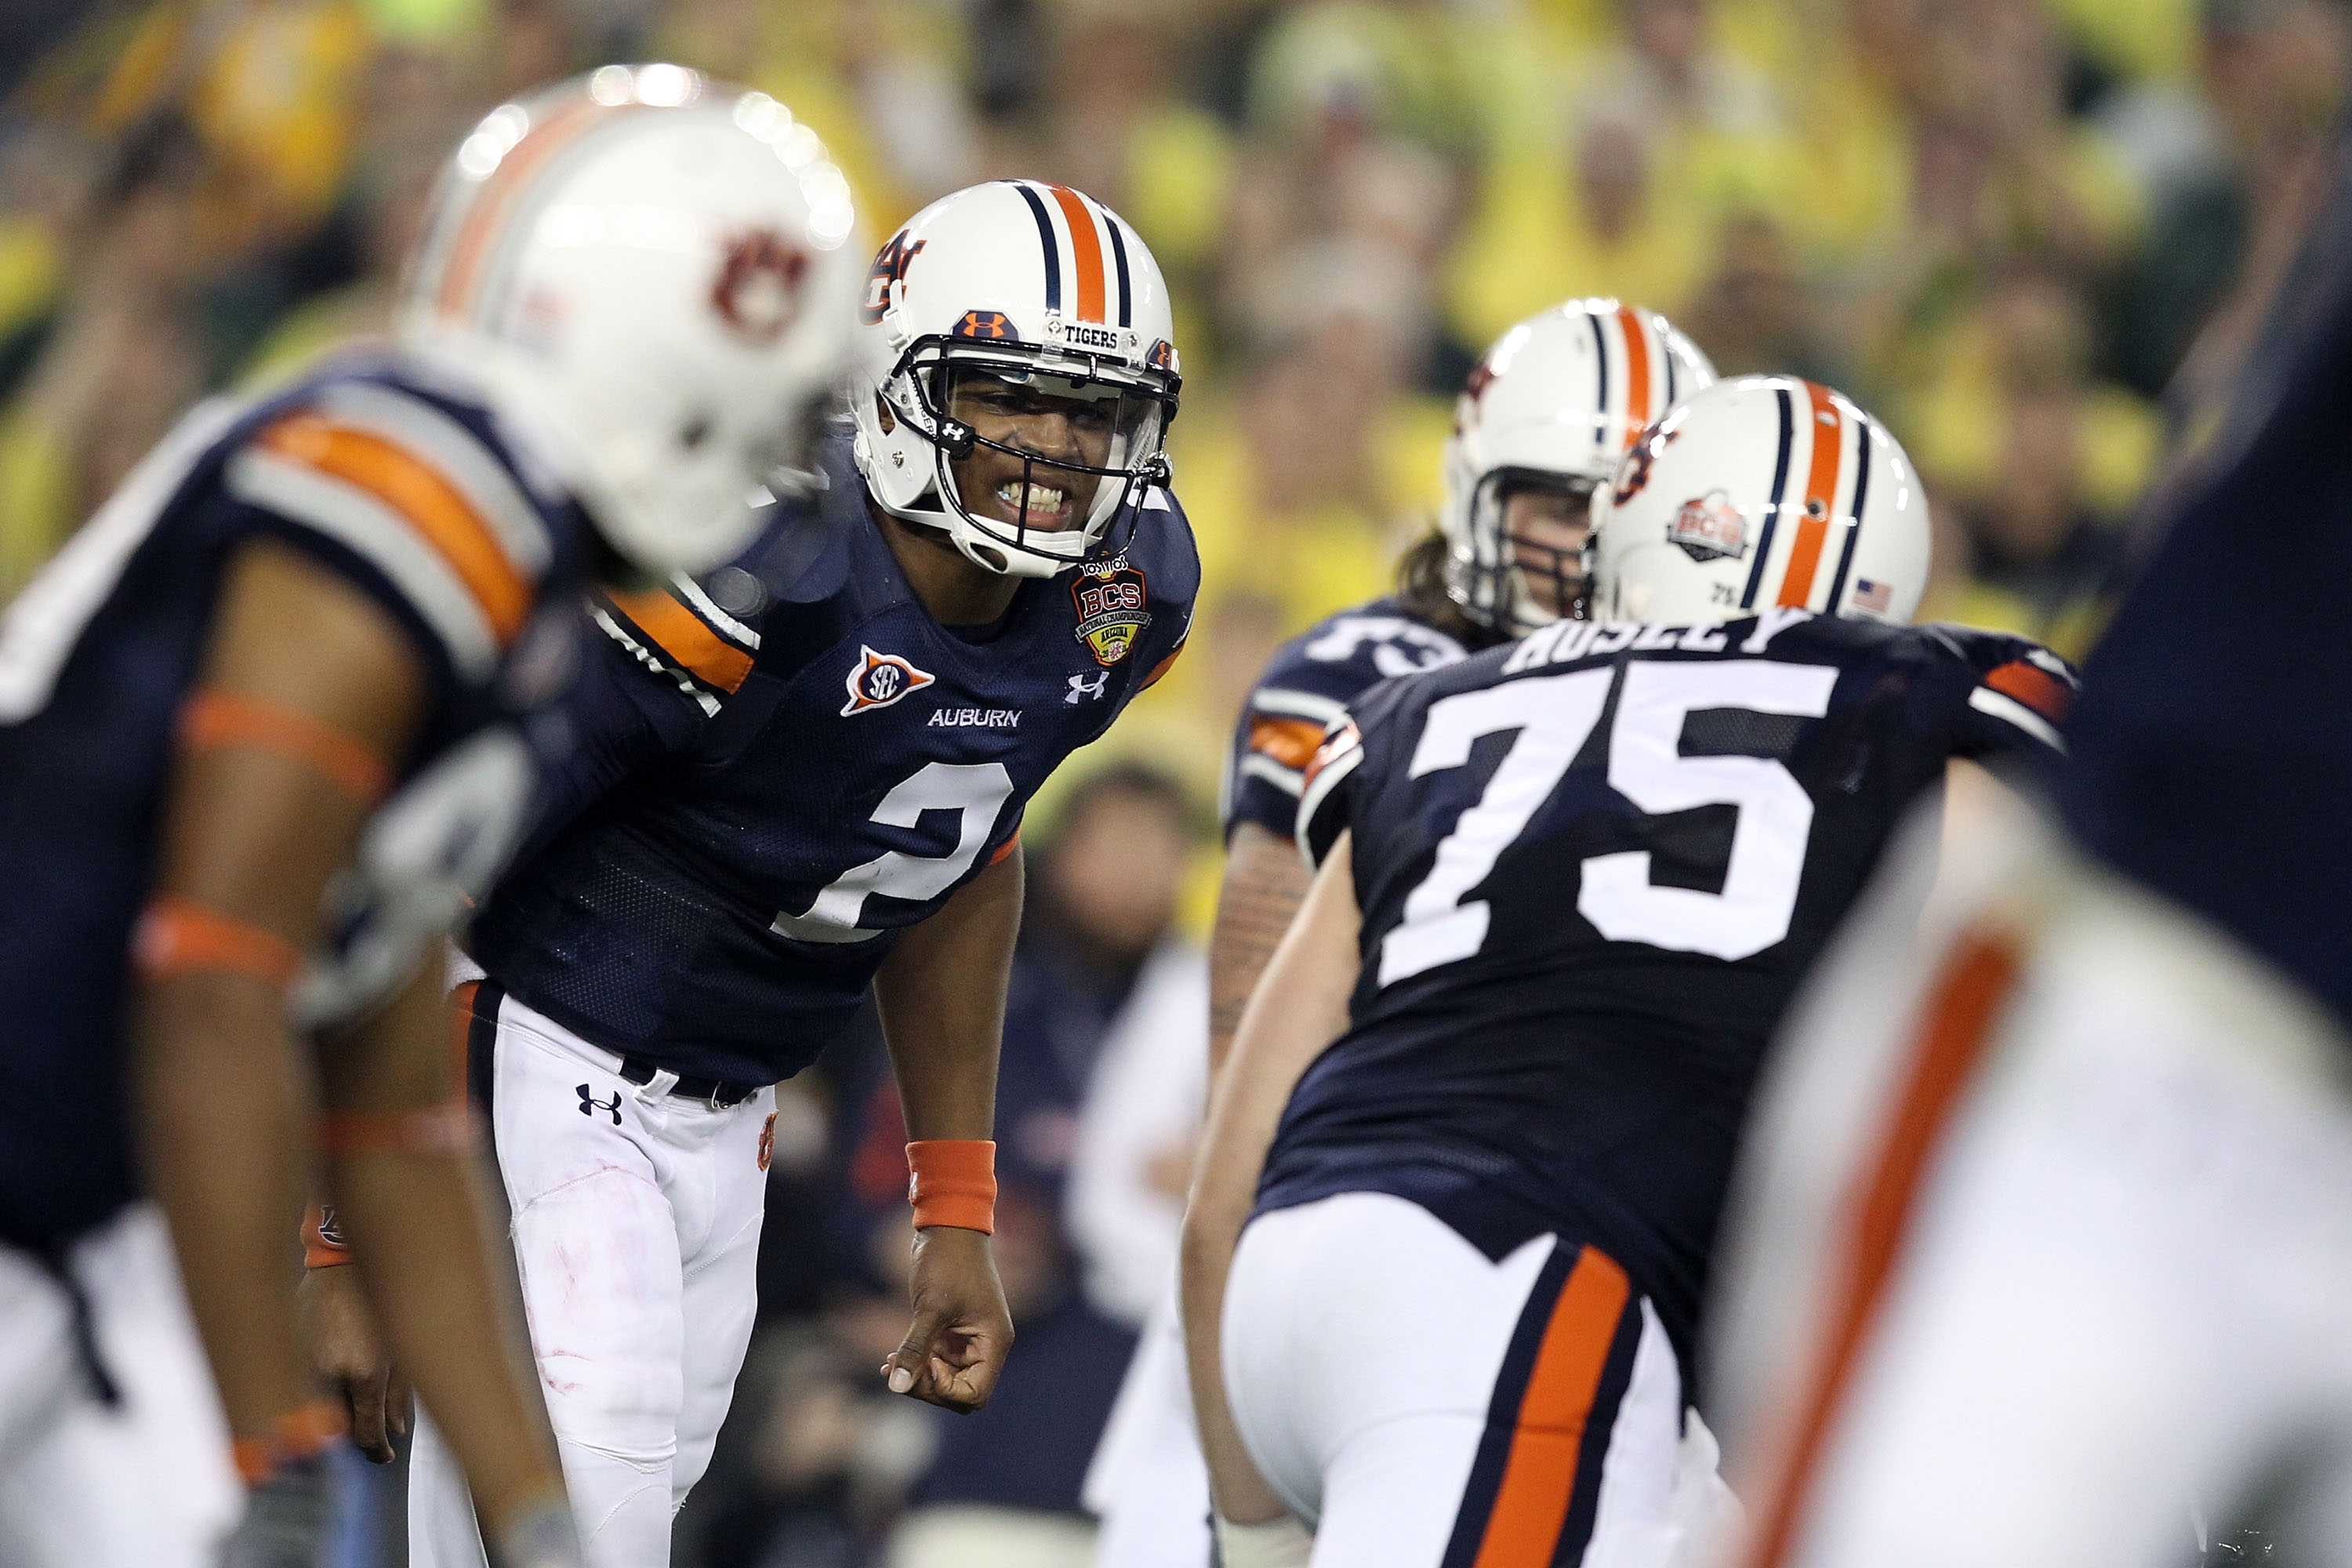 Cameron Newton, pictured above; directing Auburn's offense in 2010